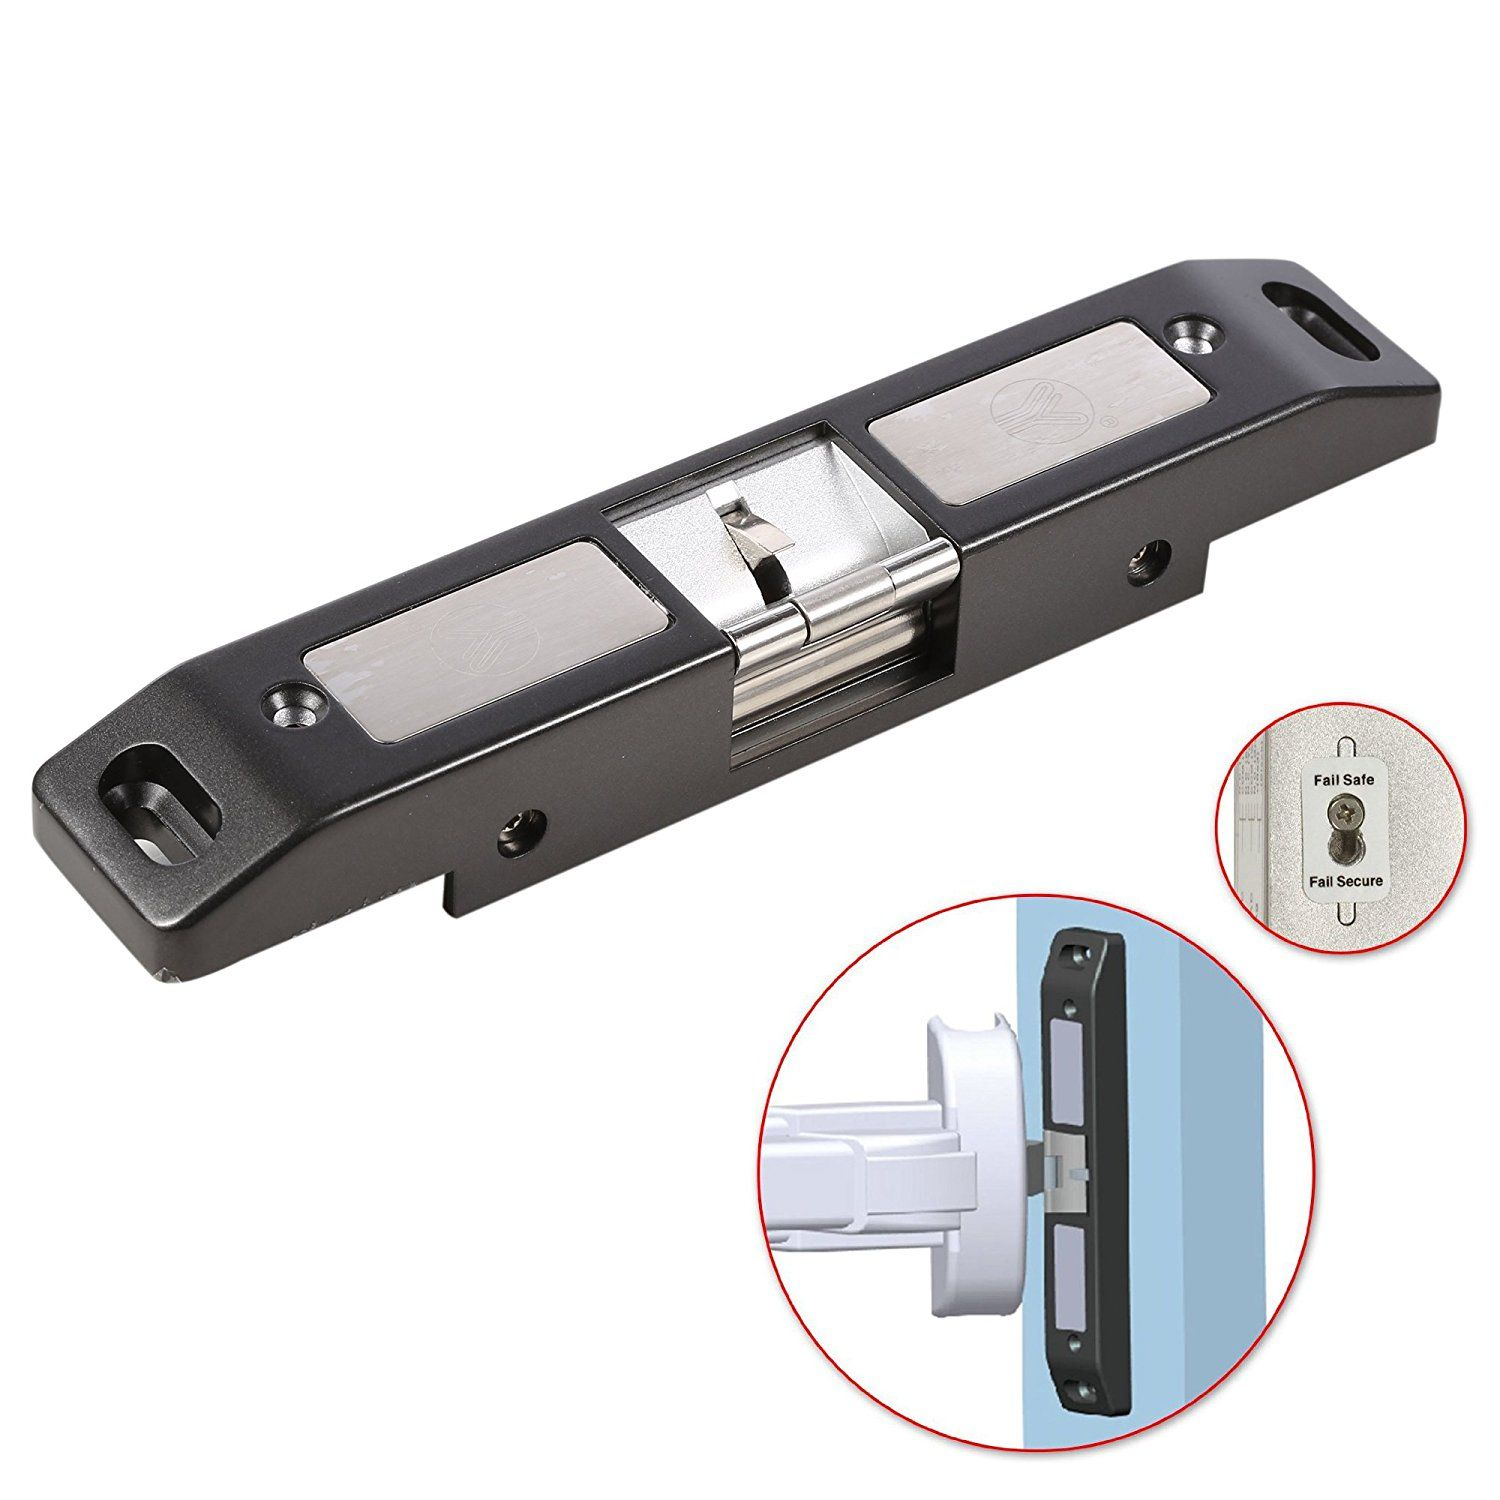 Obo Hands Electric Strike Lock For Push Panic Bar Exit Device Emergency Door Access Control Electricity Ebay